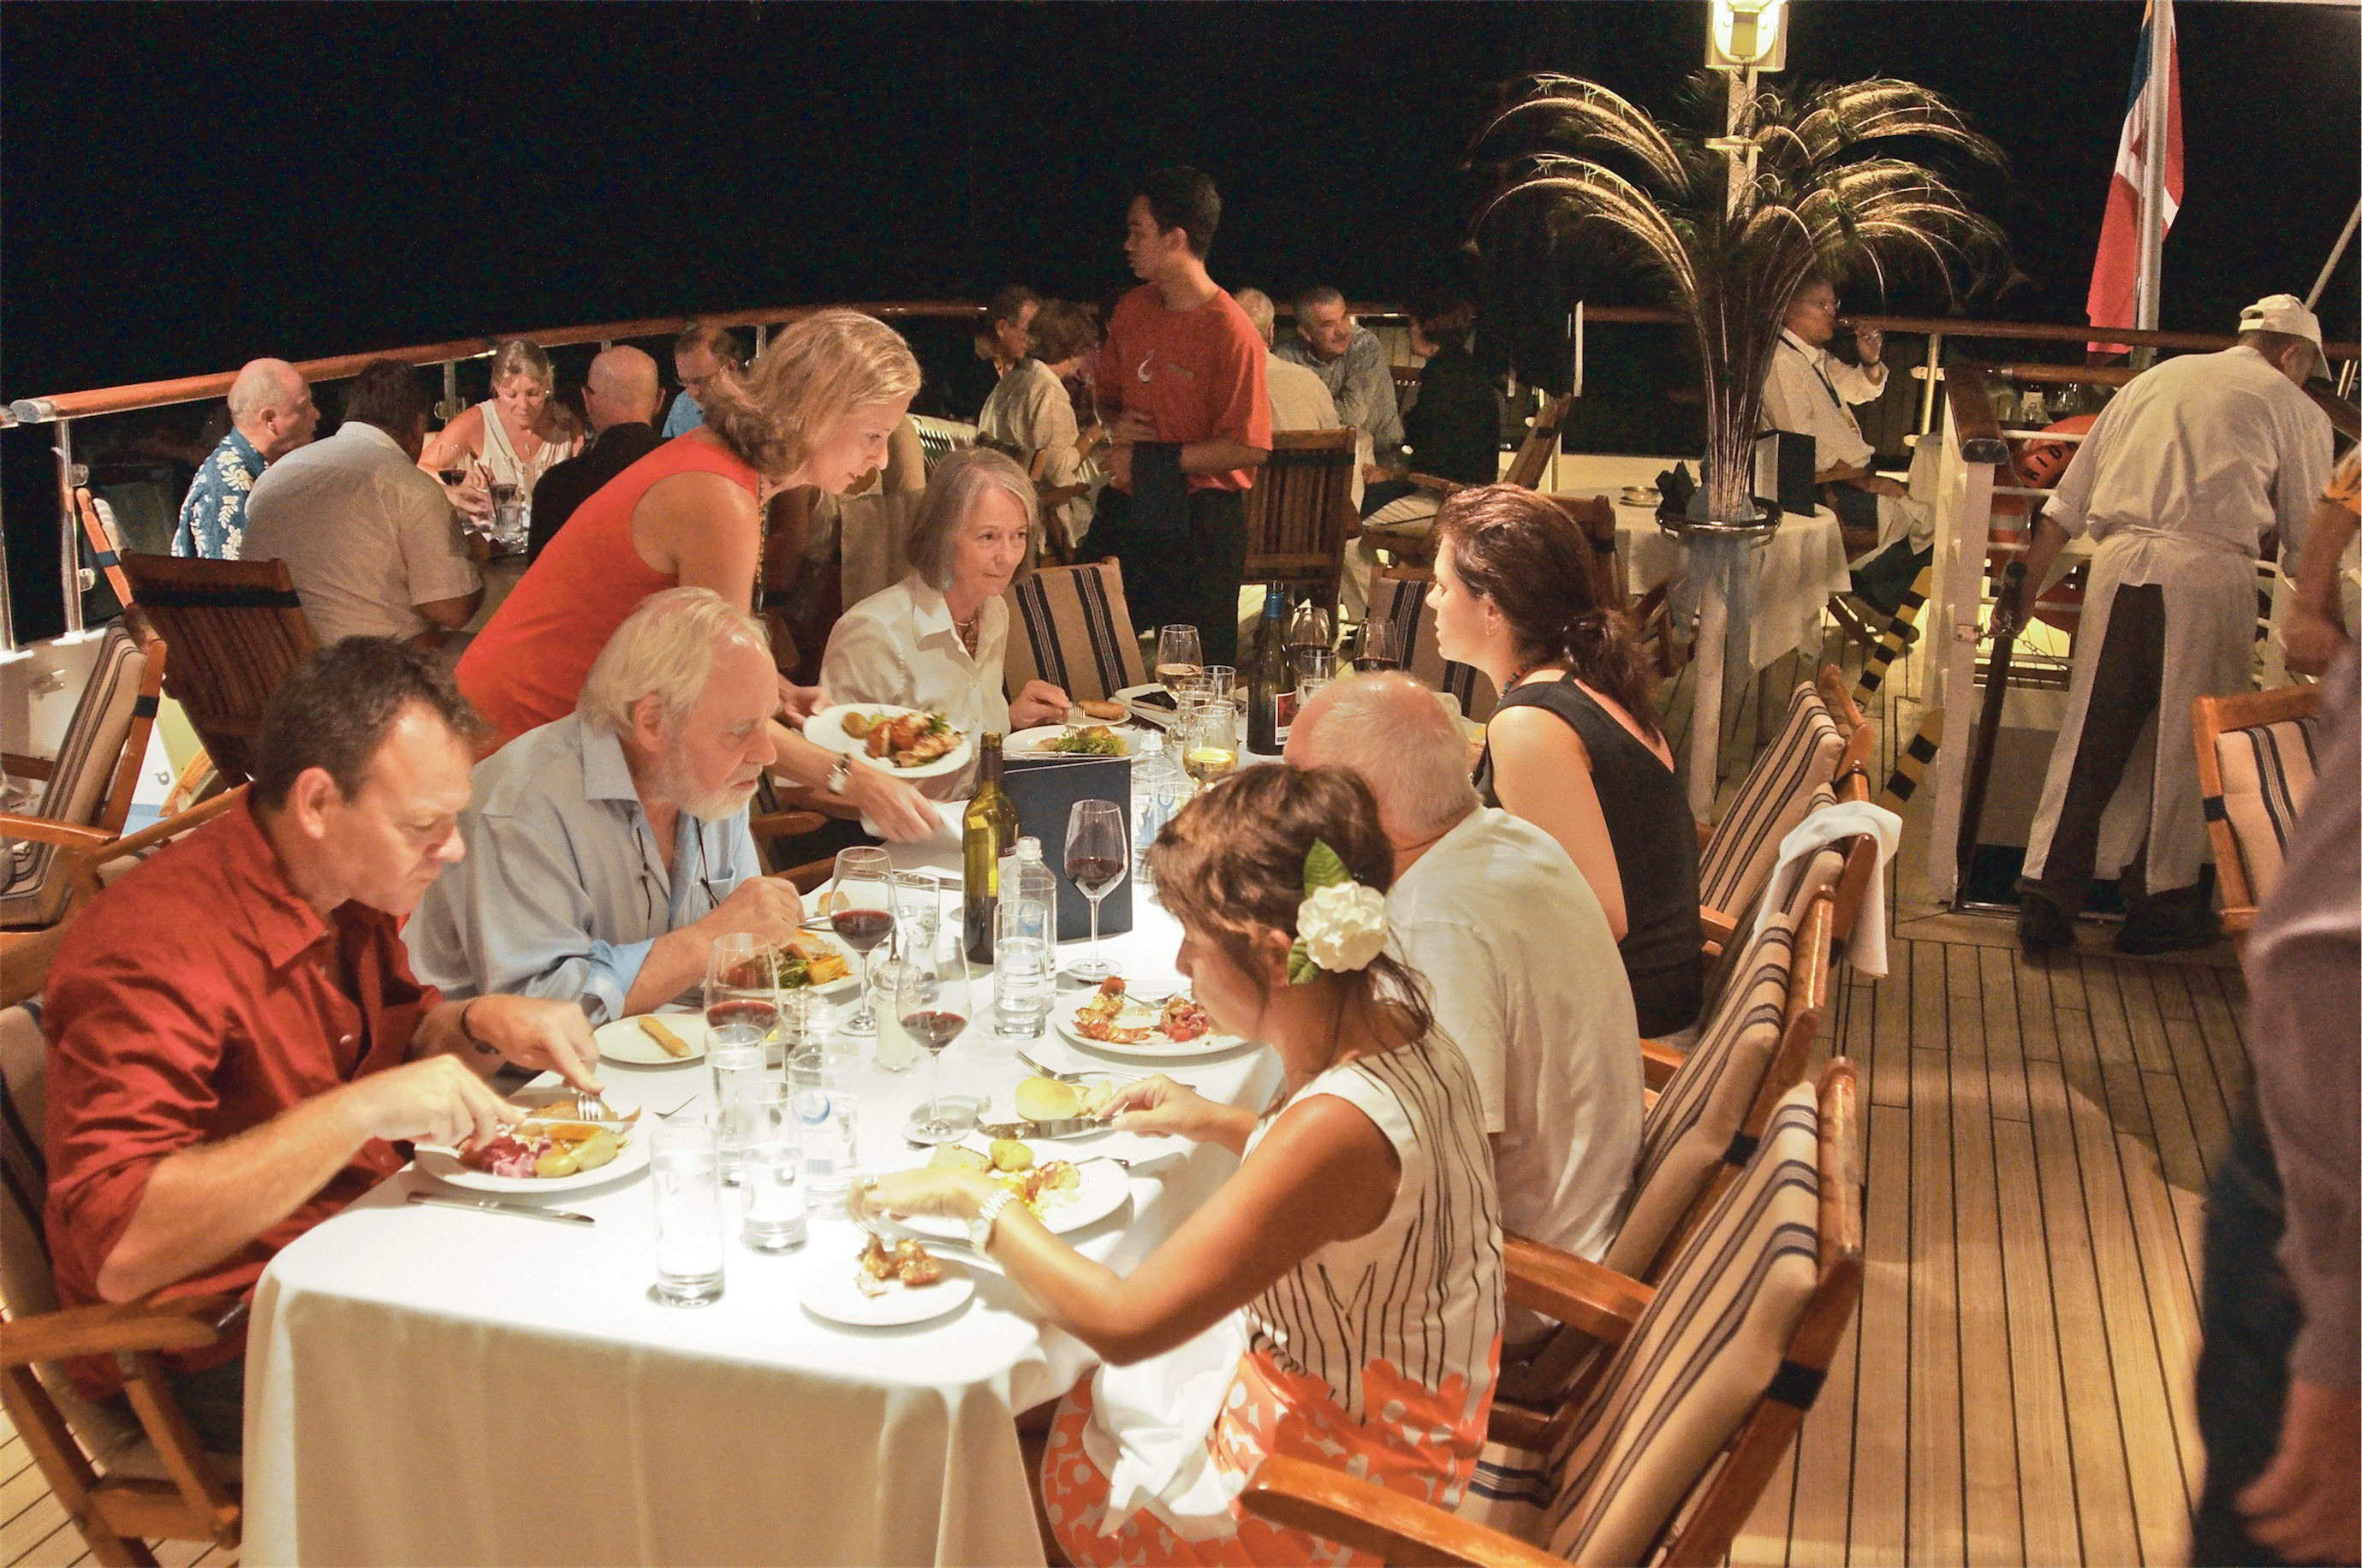 Lindblad Expeditions National Geographic Orion Exterior Dining on Deck.jpg